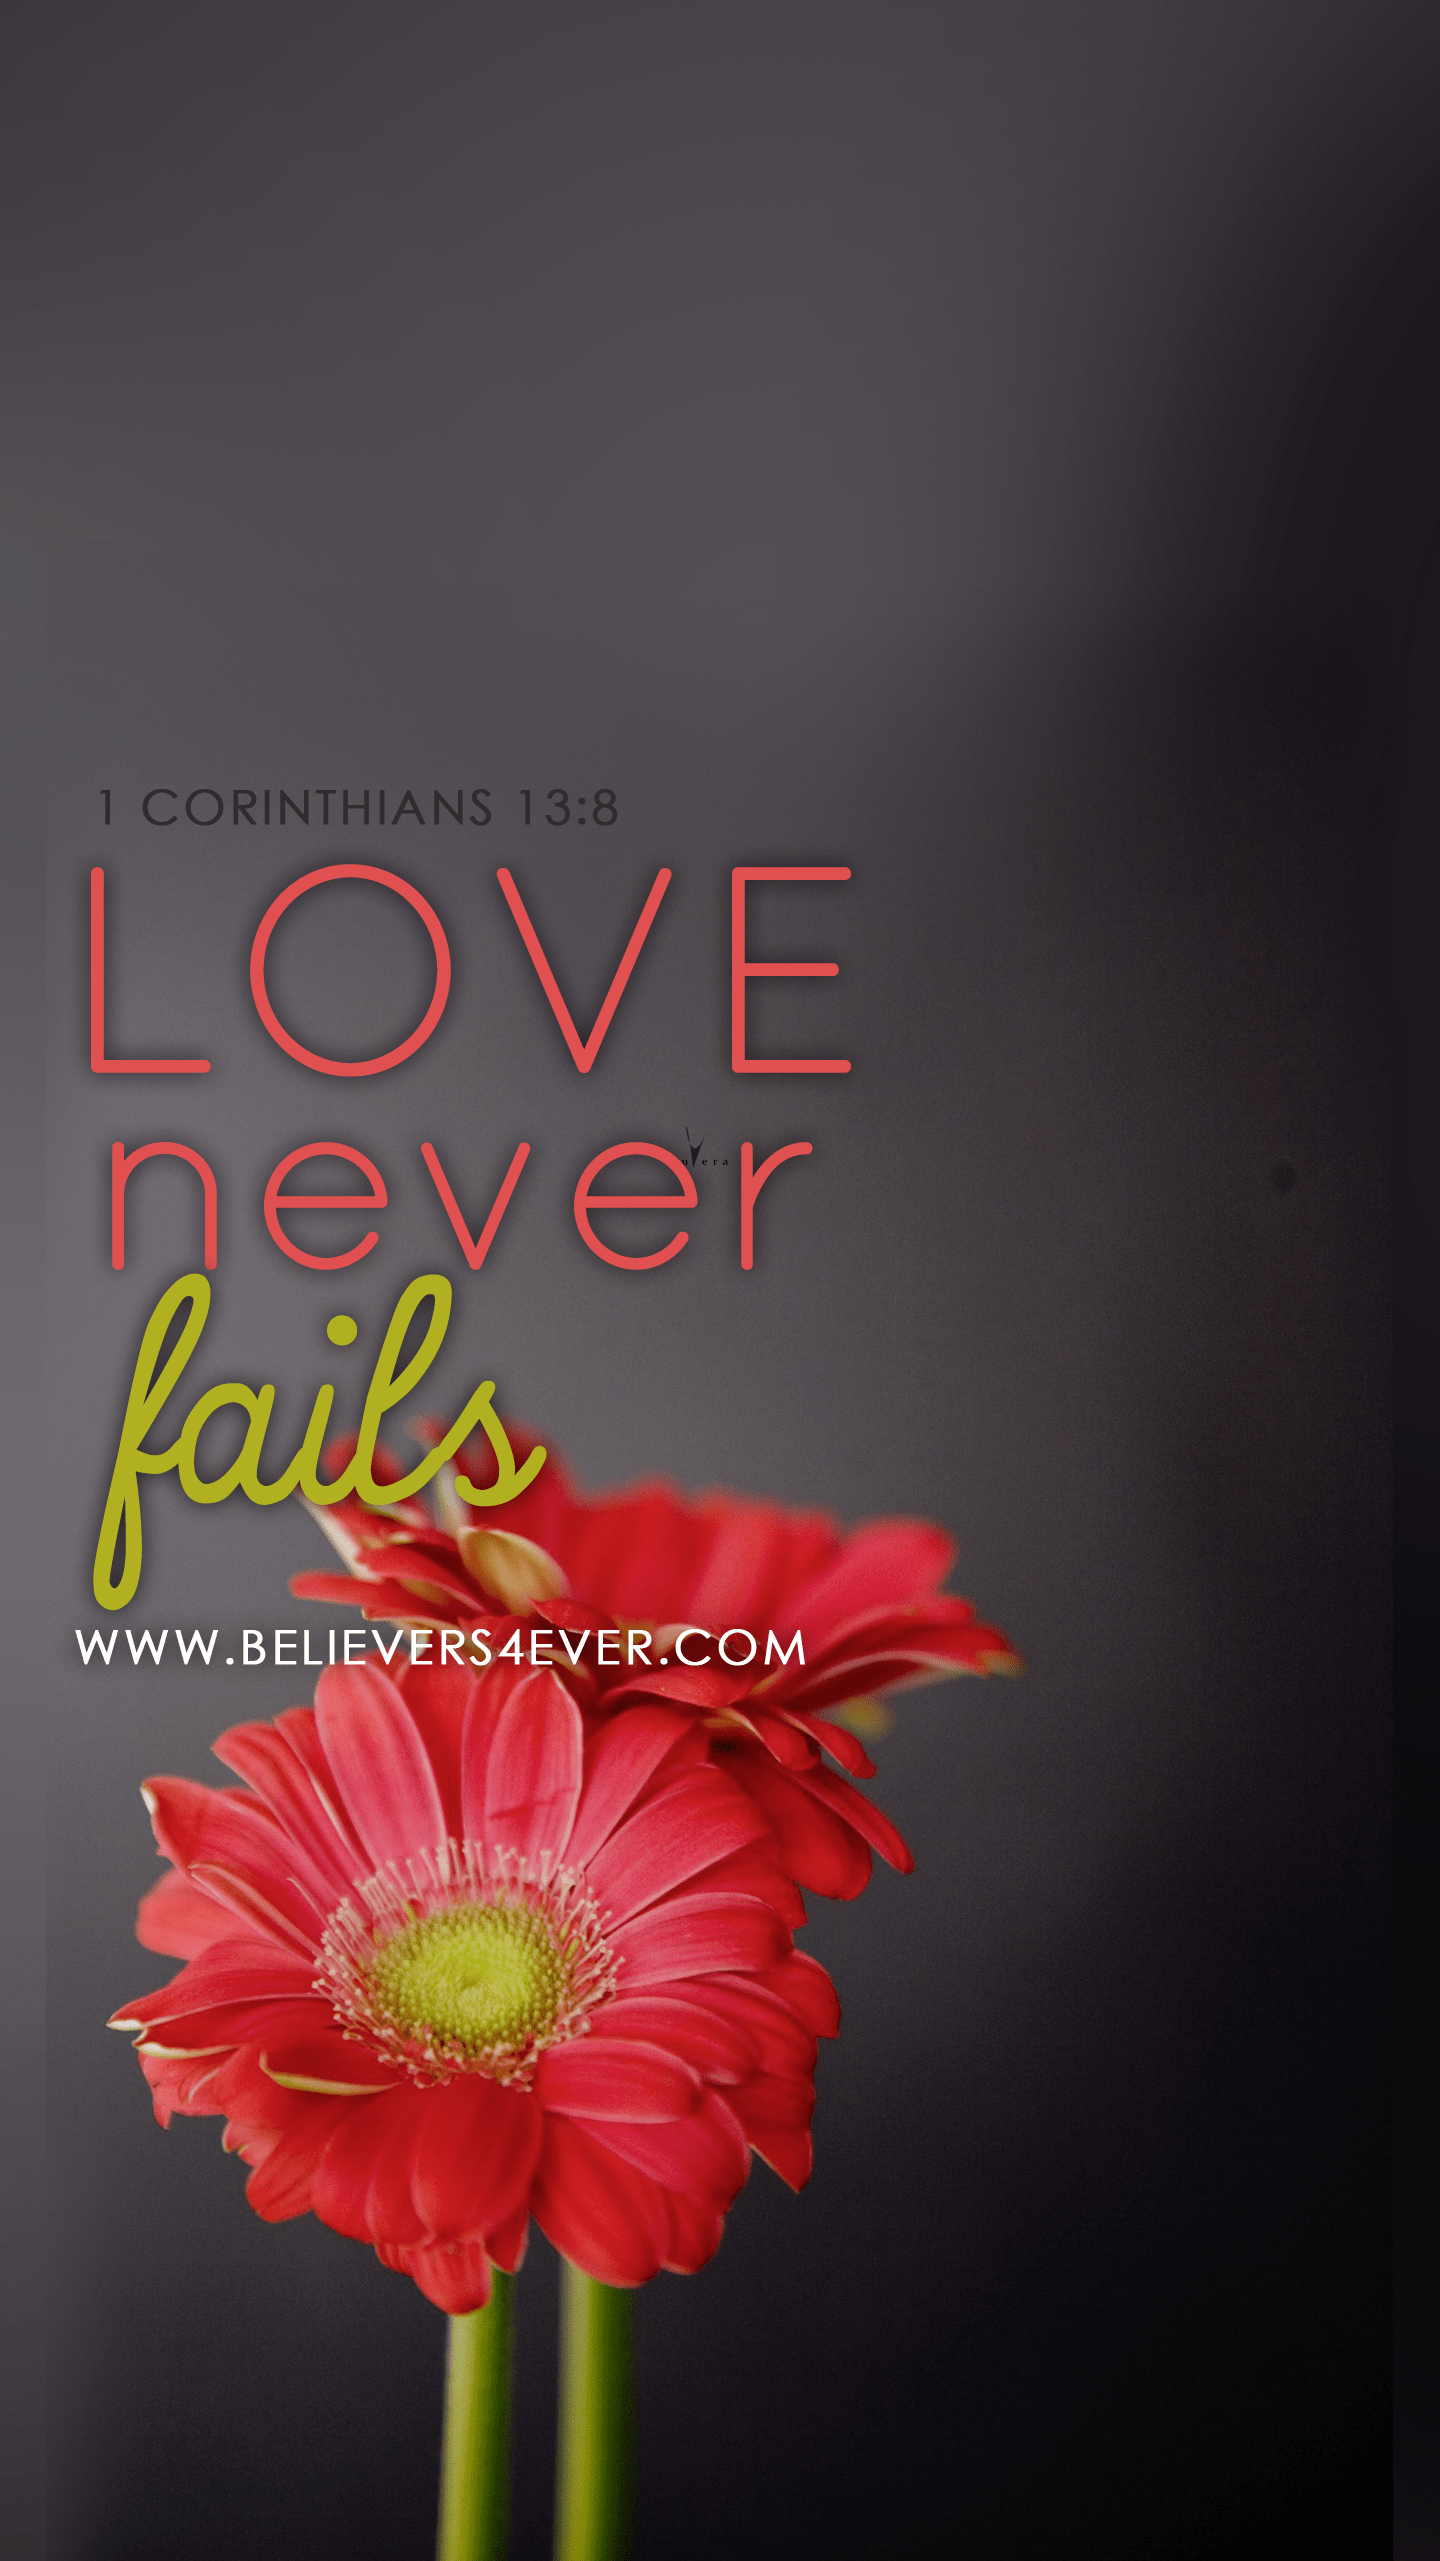 Jesus Wallpapers And Quotes Love Never Fails Believers4ever Com